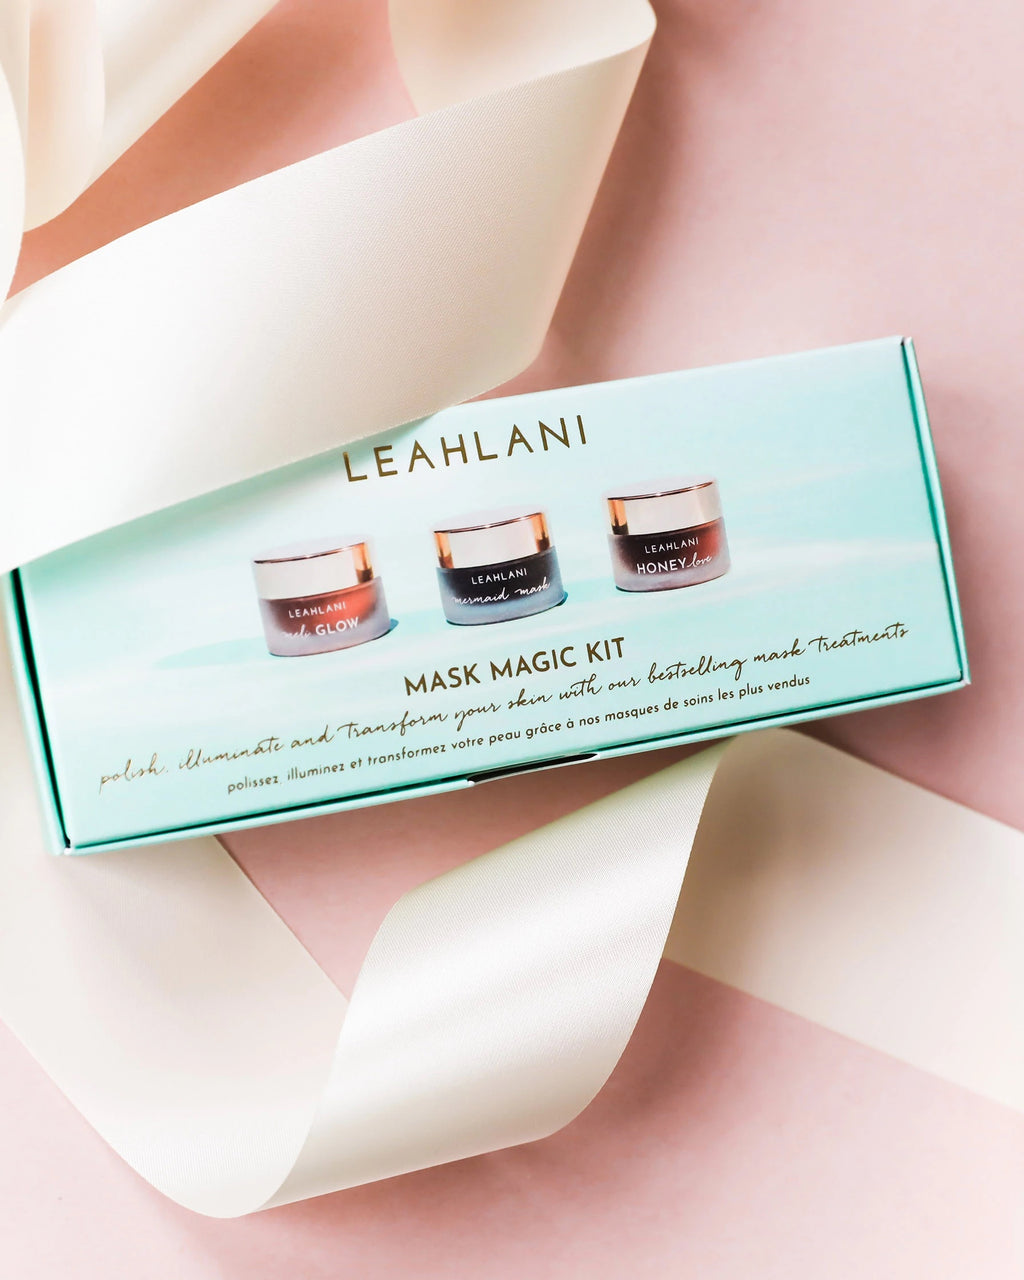 Mask Magic Kit - LEAHLANI's three popular masks in a small format